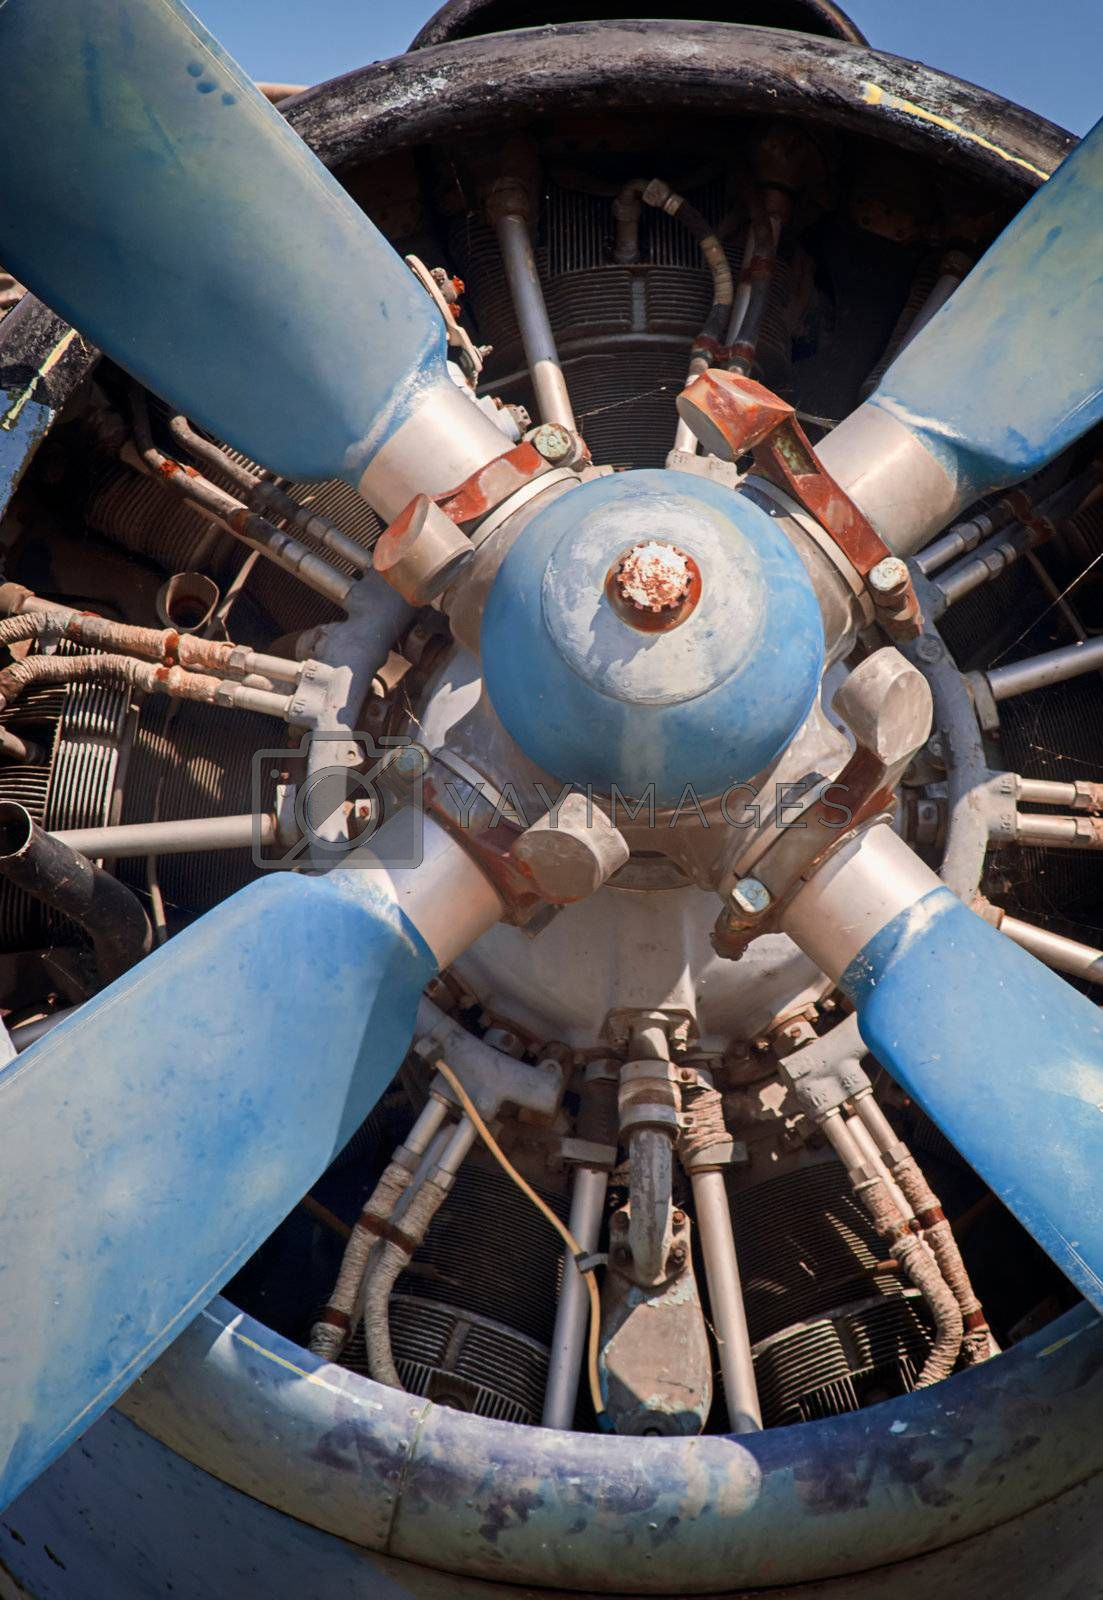 old piston engine and propeller aircraft